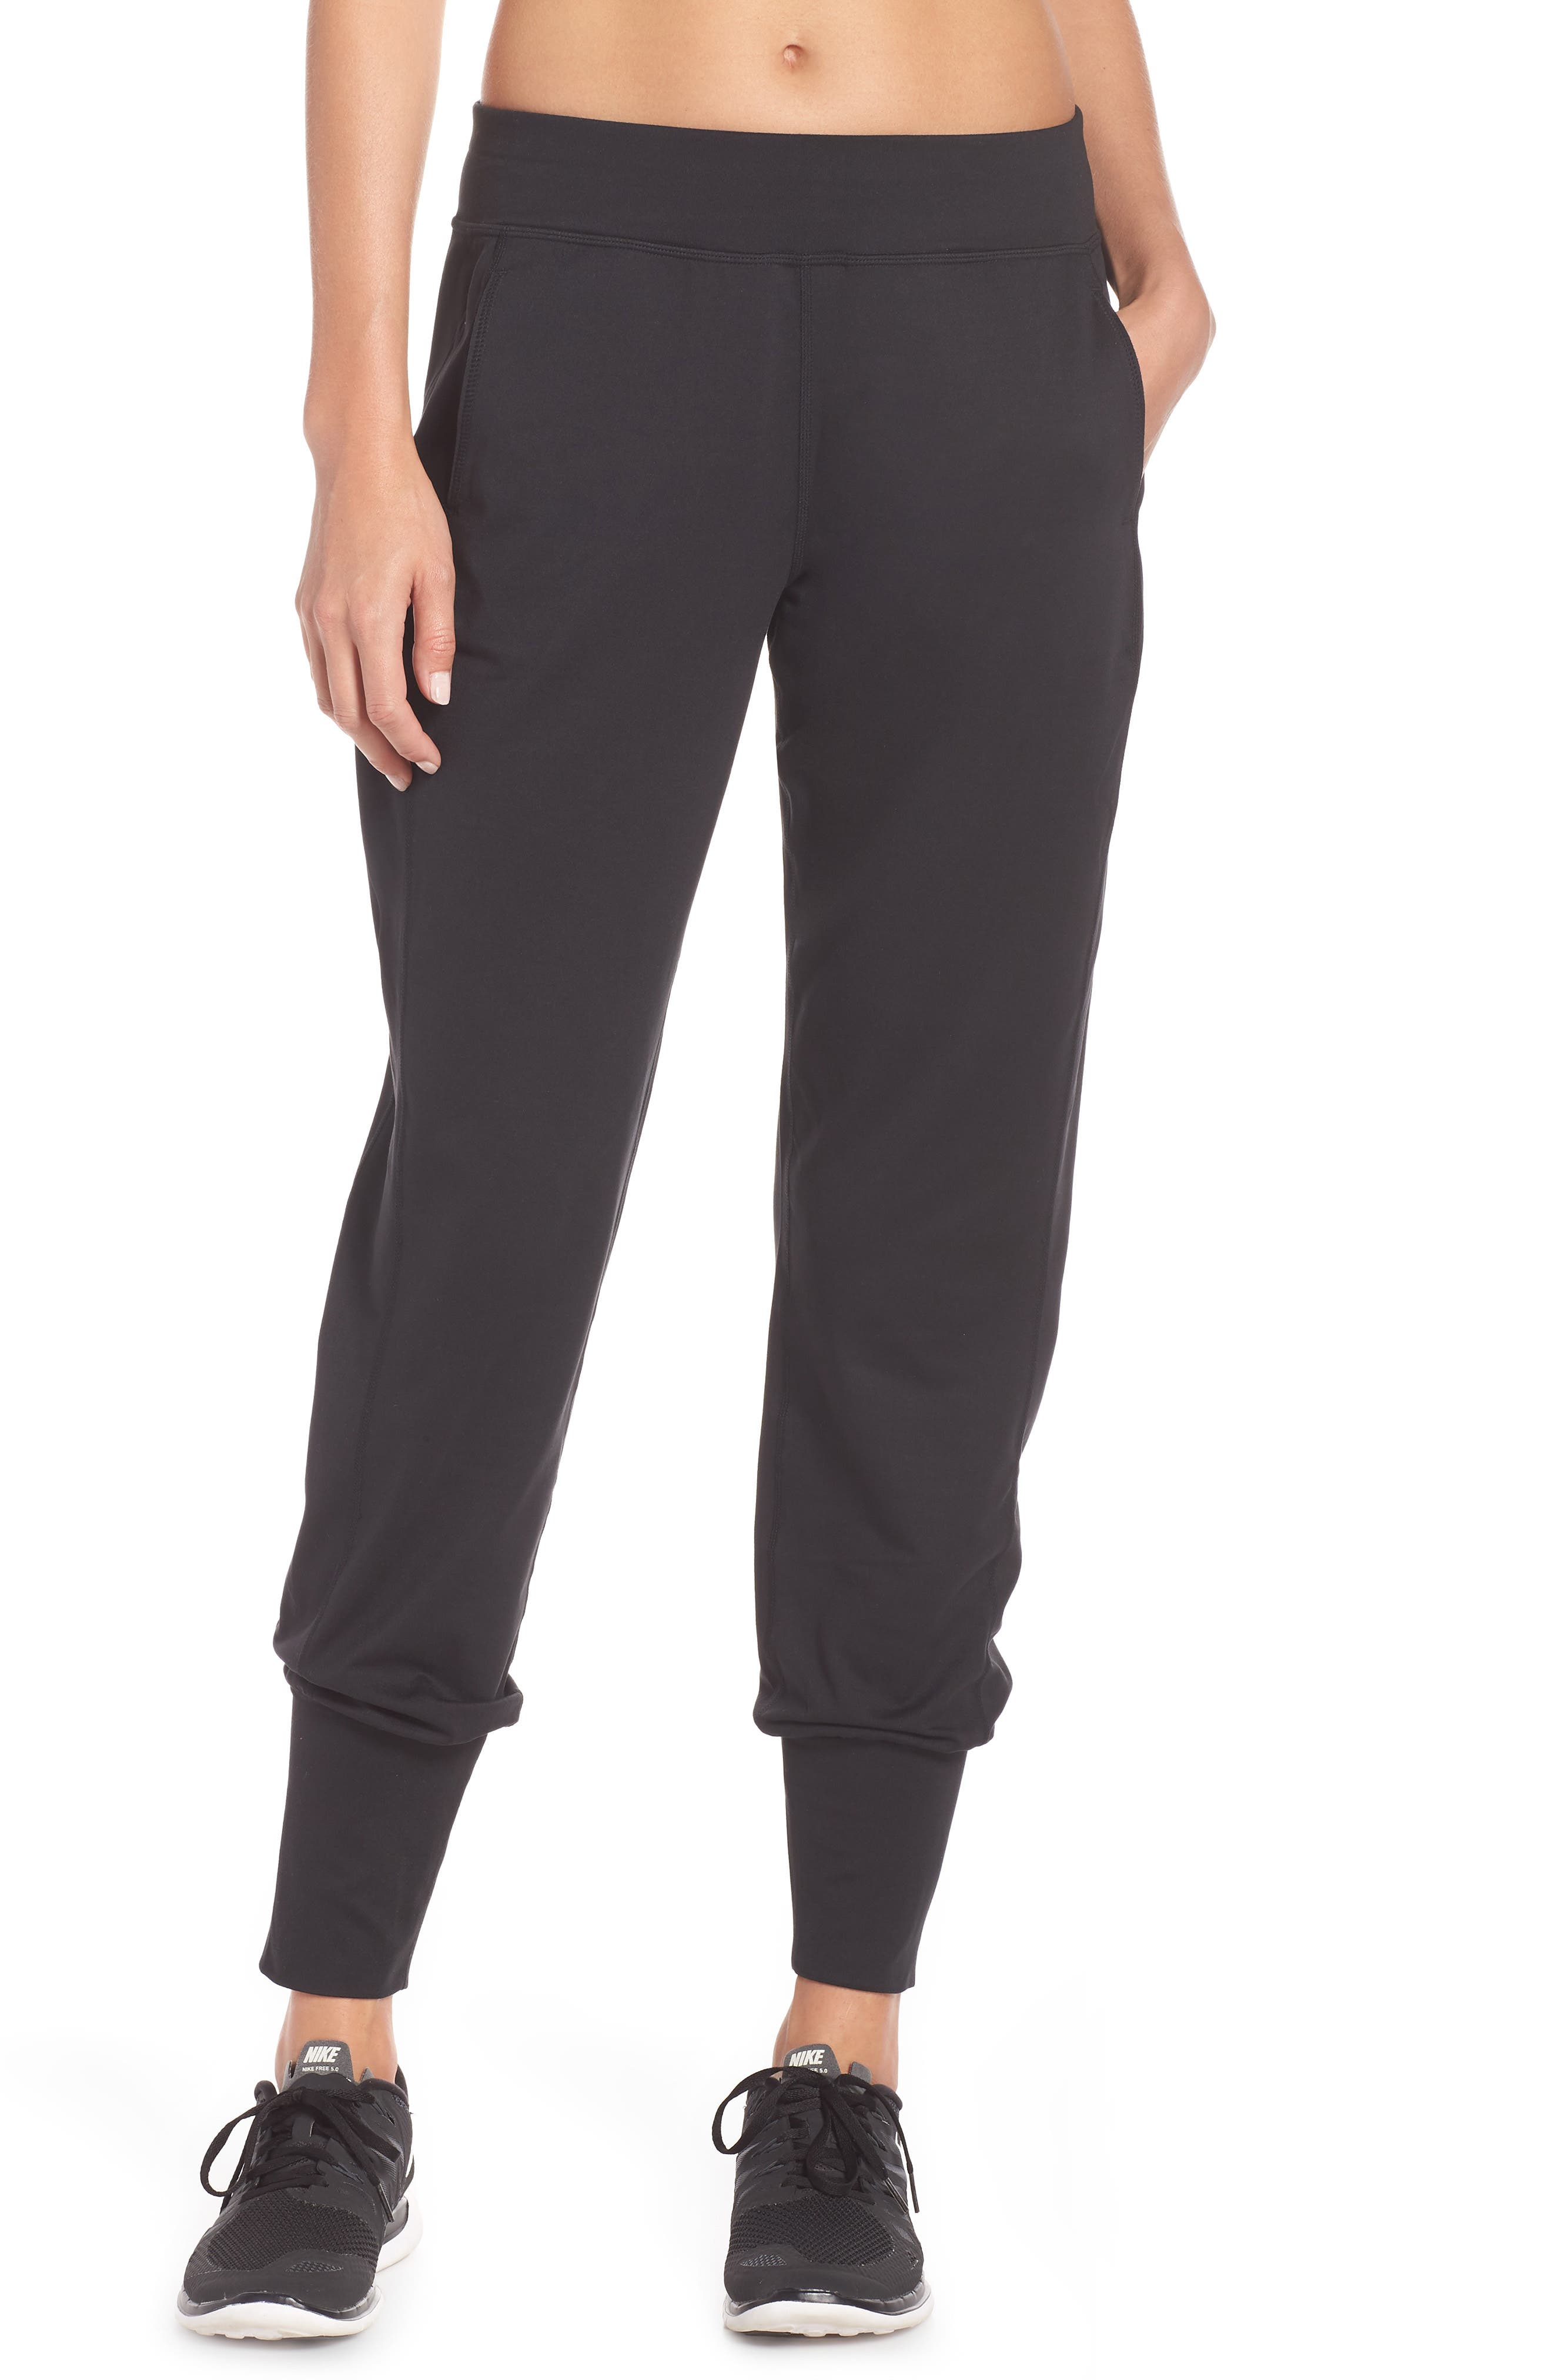 Garudasana Yoga Trousers,                         Main,                         color, BLACK